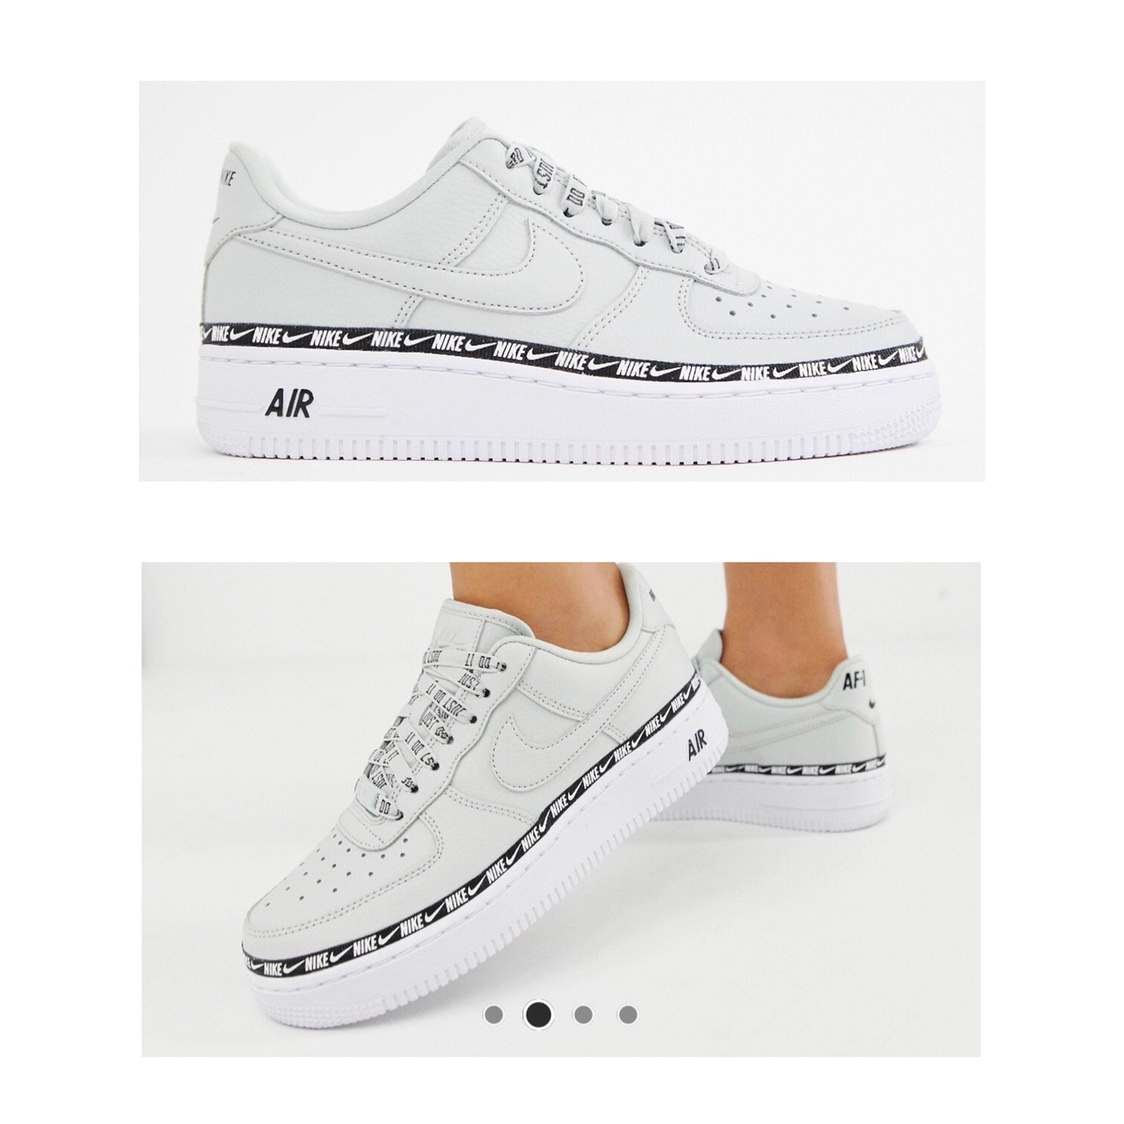 Light silver' Nike Air Force 1 swoosh